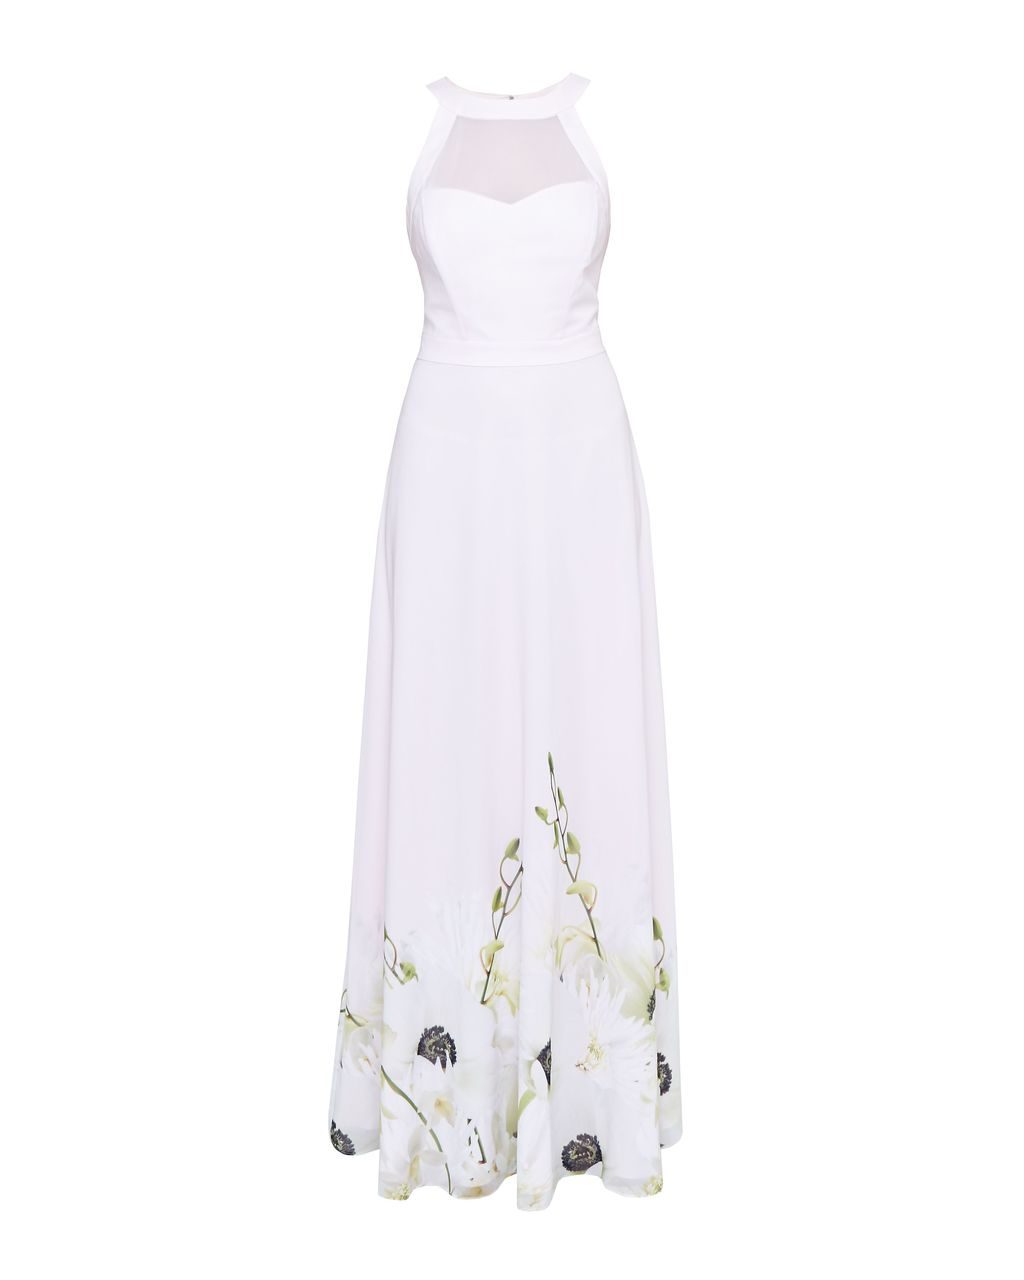 Adanya Pearly Petals Maxi Dress, Pink - sleeve style: sleeveless; style: maxi dress; predominant colour: white; occasions: evening; length: floor length; fit: body skimming; fibres: polyester/polyamide - 100%; neckline: crew; sleeve length: sleeveless; pattern type: fabric; pattern: florals; texture group: woven light midweight; season: s/s 2016; wardrobe: event